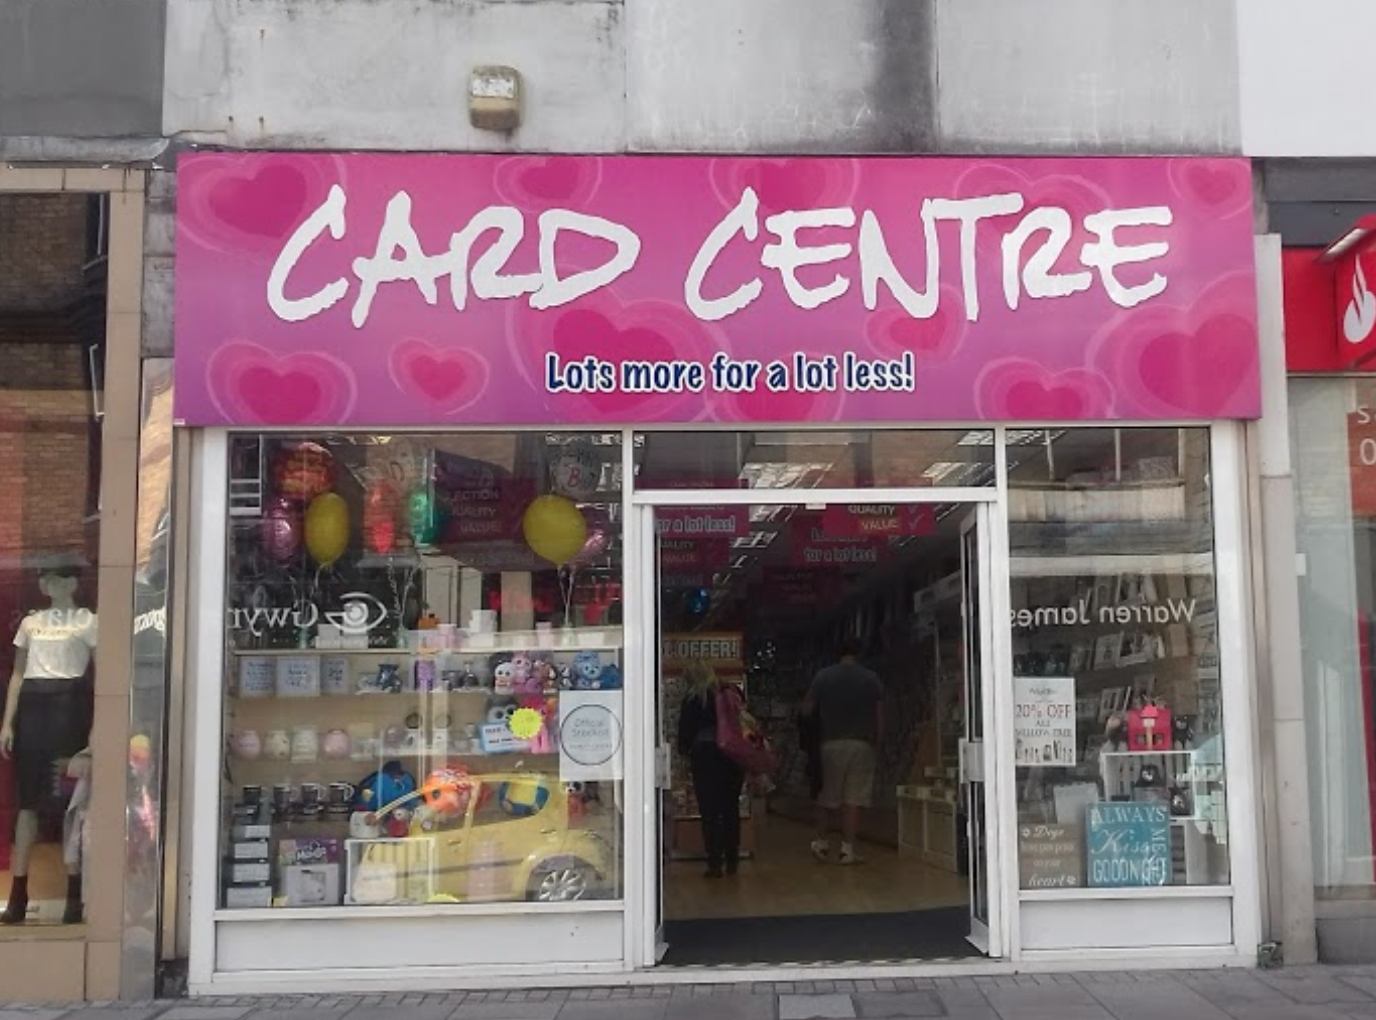 Above: The Card Centre shop in Pontypridd was closed for two days as a result of the havoc caused by the weather.